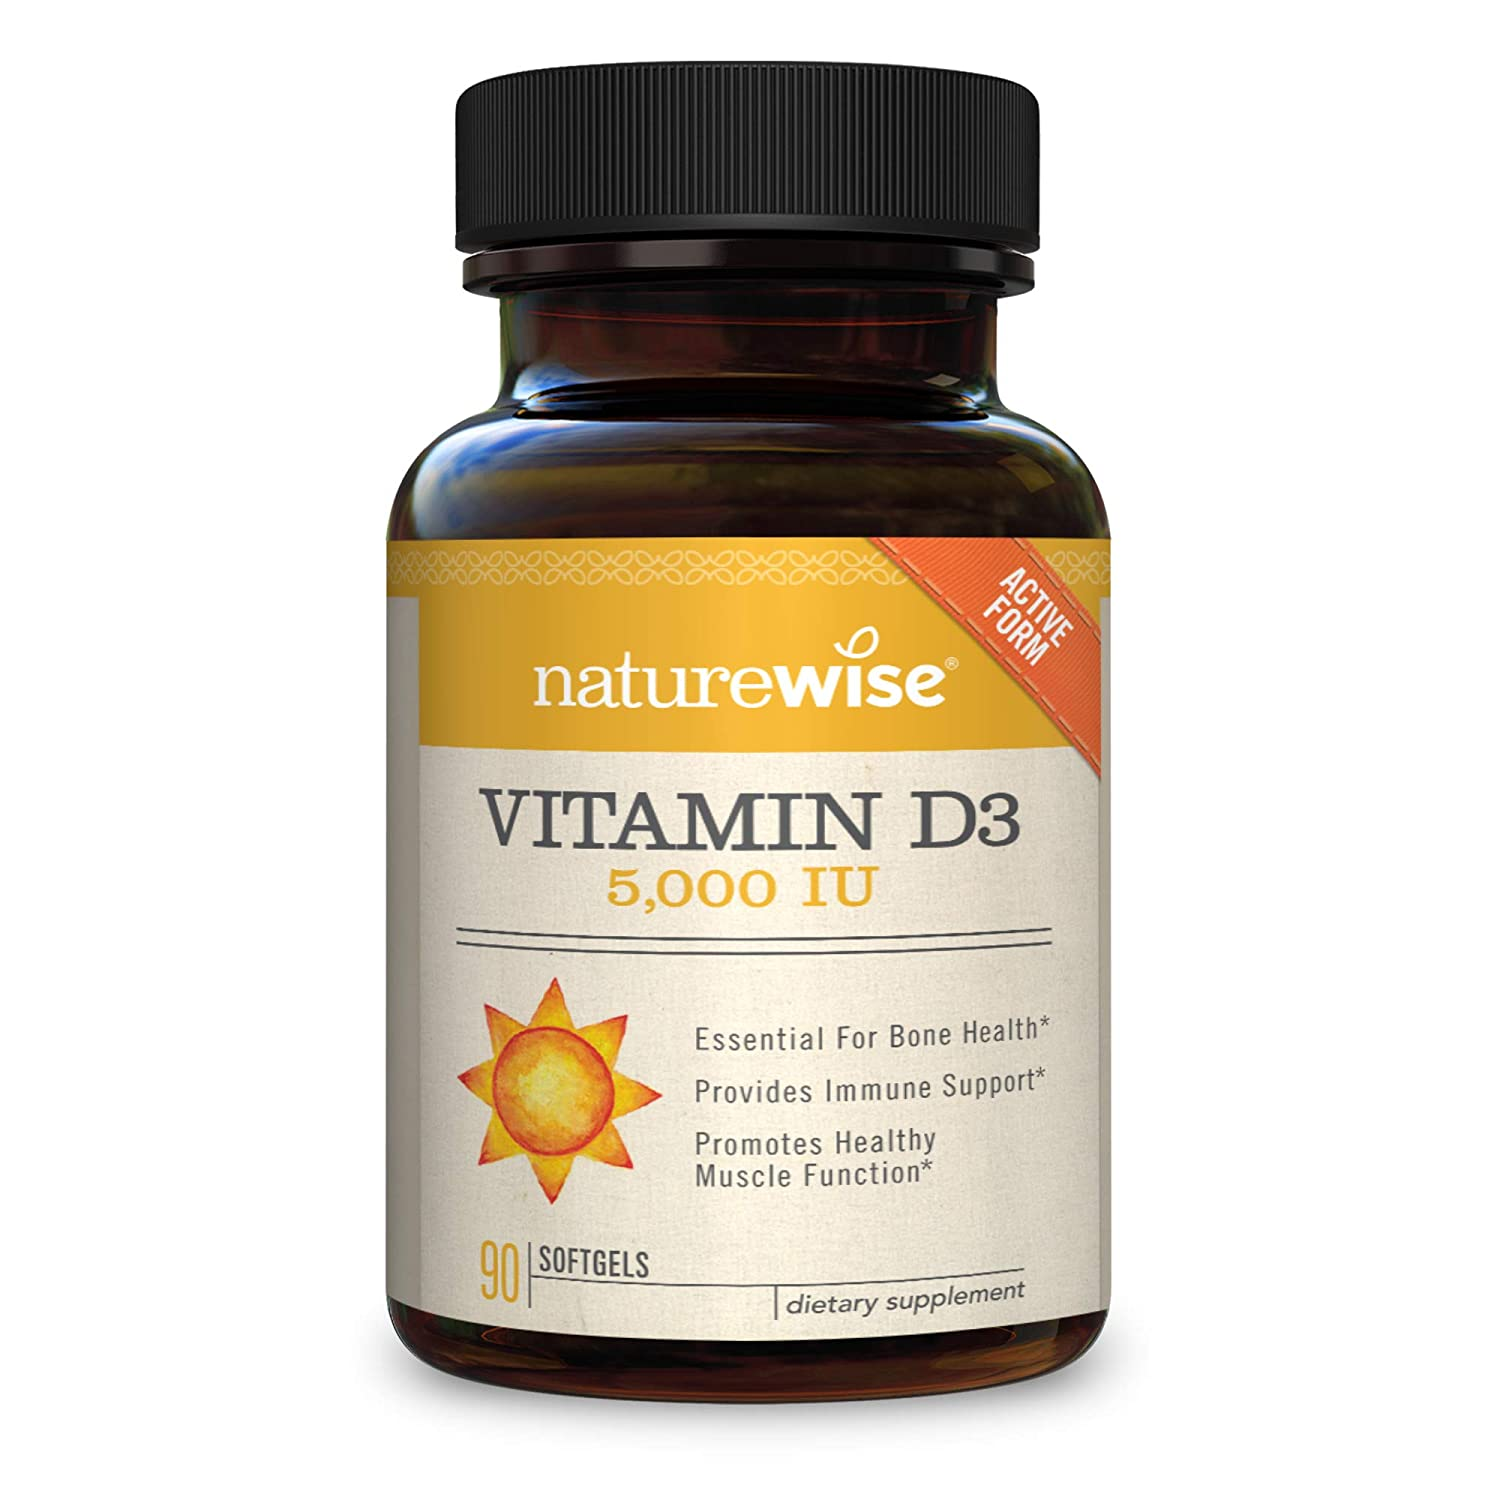 NatureWise Vitamin D3 5,000 IU for Healthy Muscle Function, Bone Health, & Immune Support | Non-GMO in Cold-Pressed Organic Olive Oil & Gluten-Free (Packaging May Vary) [3 Month Supply - 90 Count]